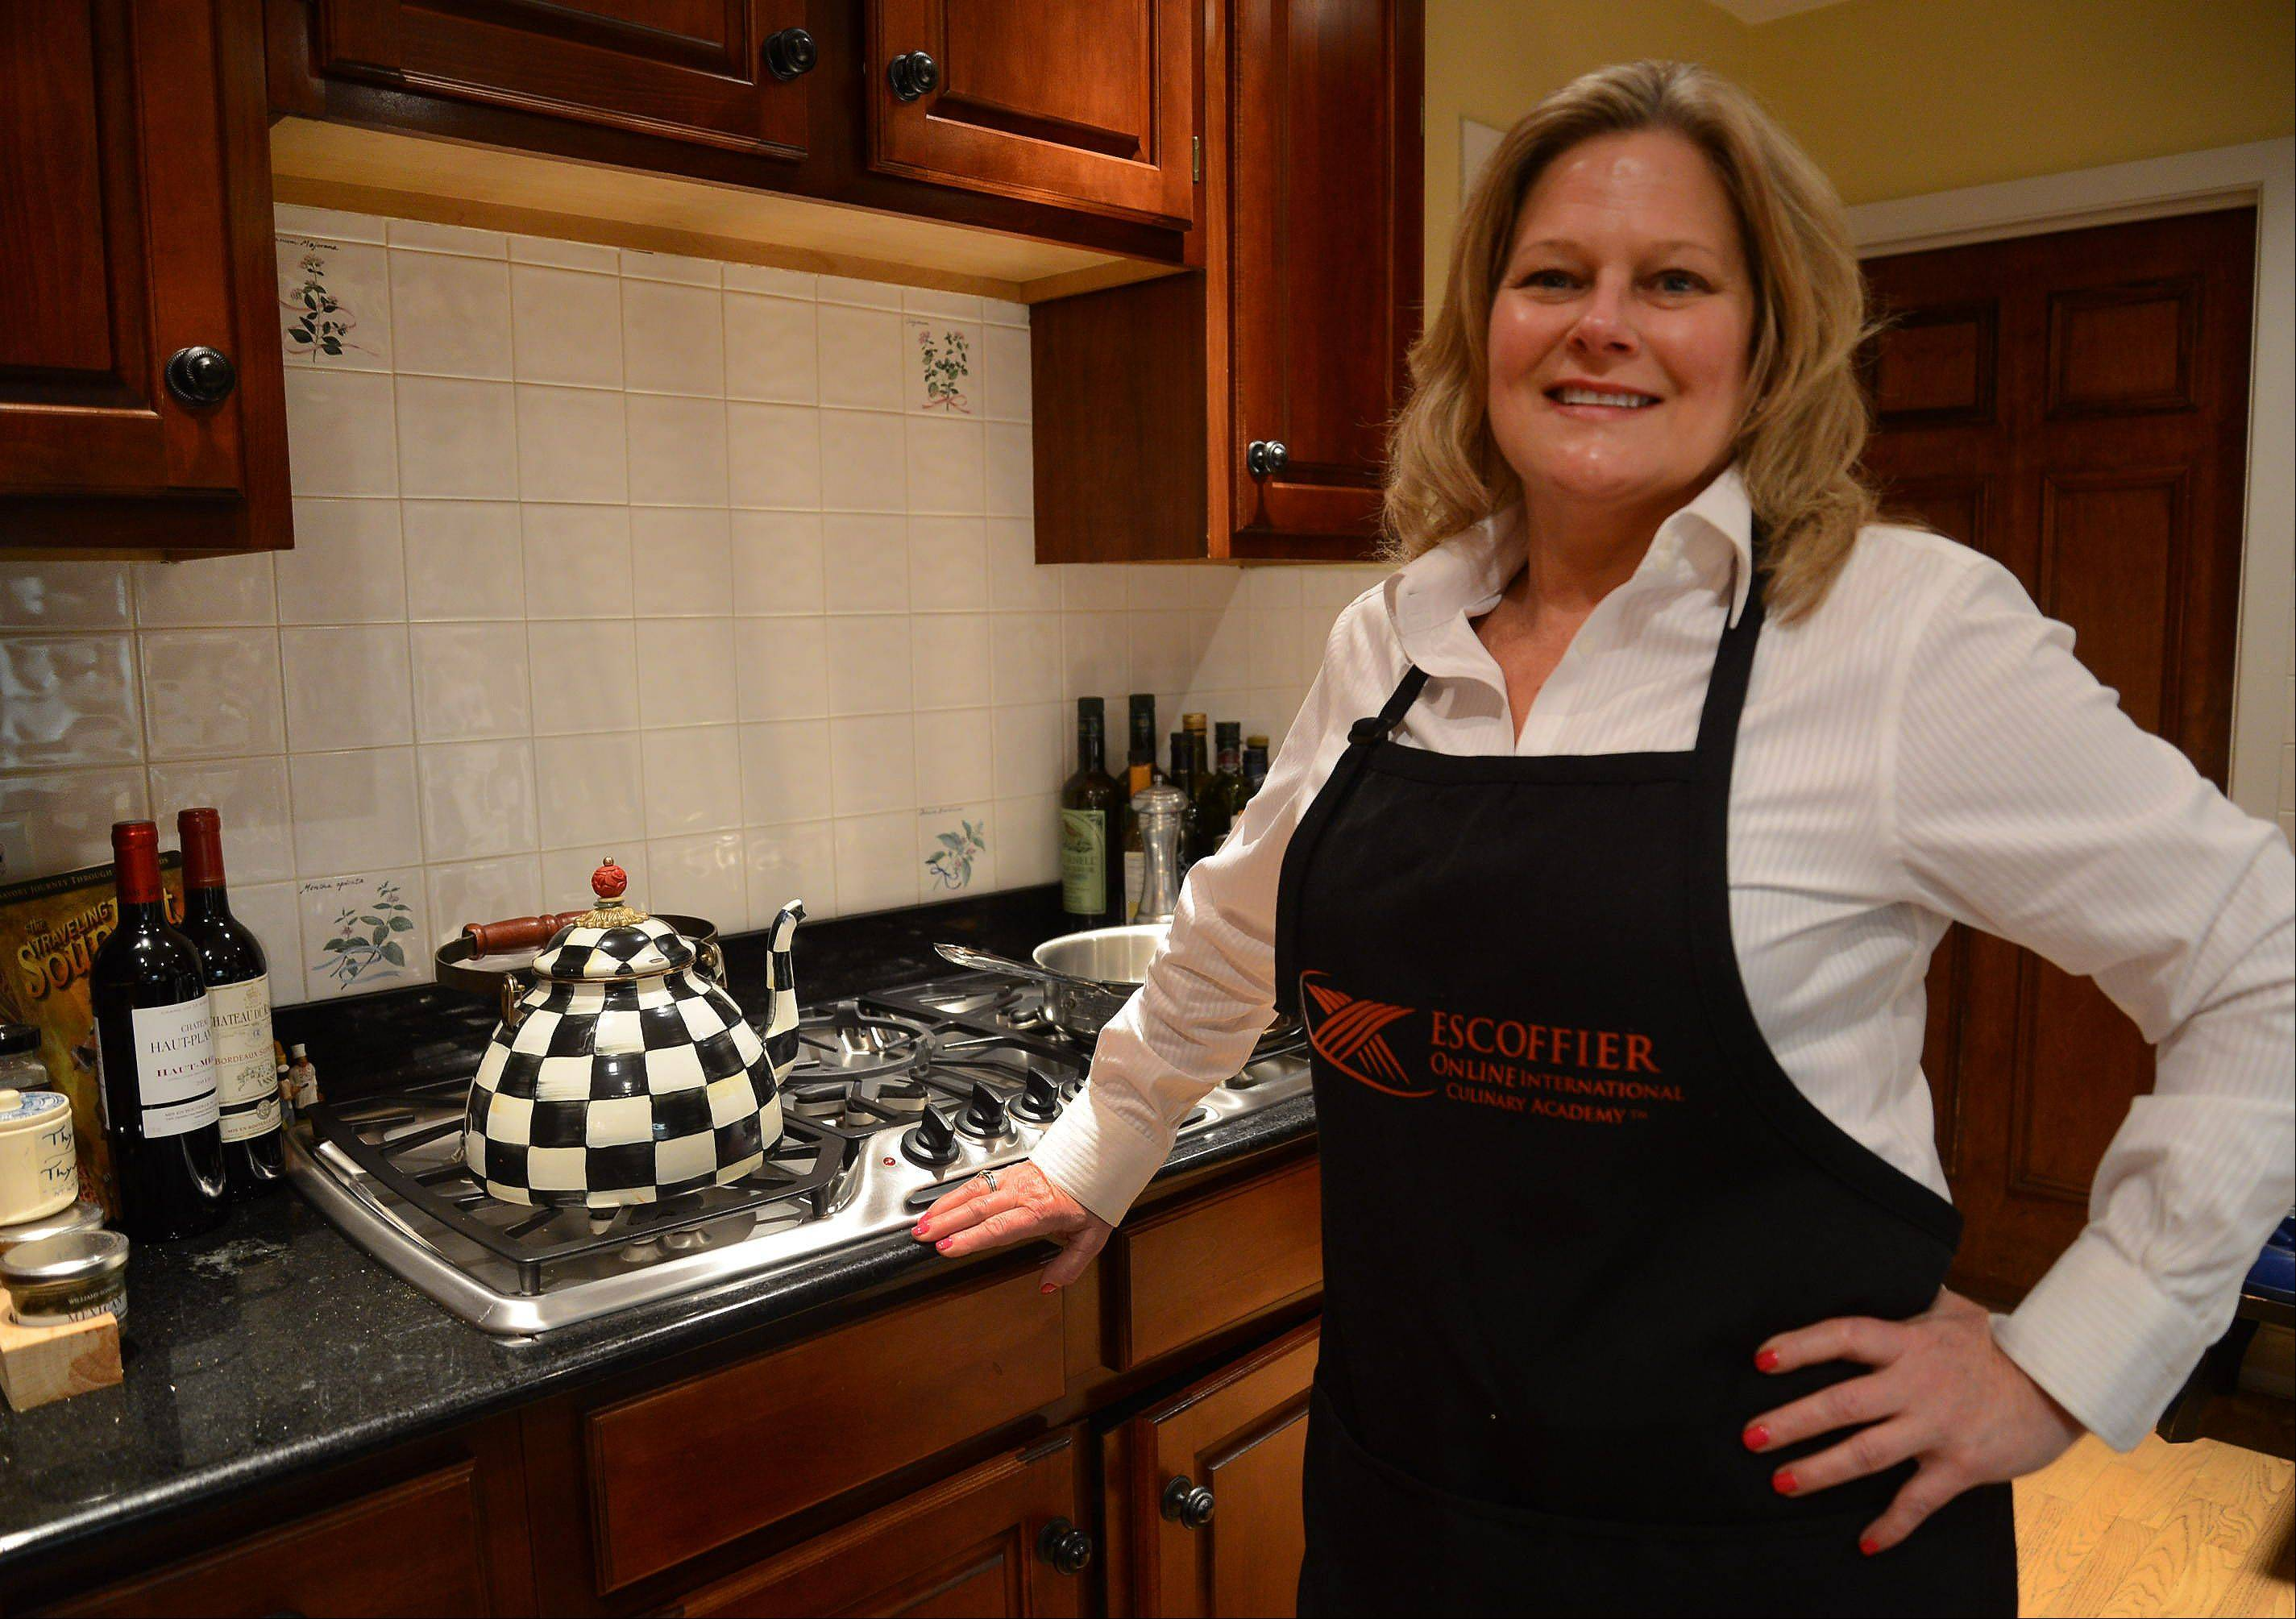 Cook of the Week: Online course helps working mom hone her skills